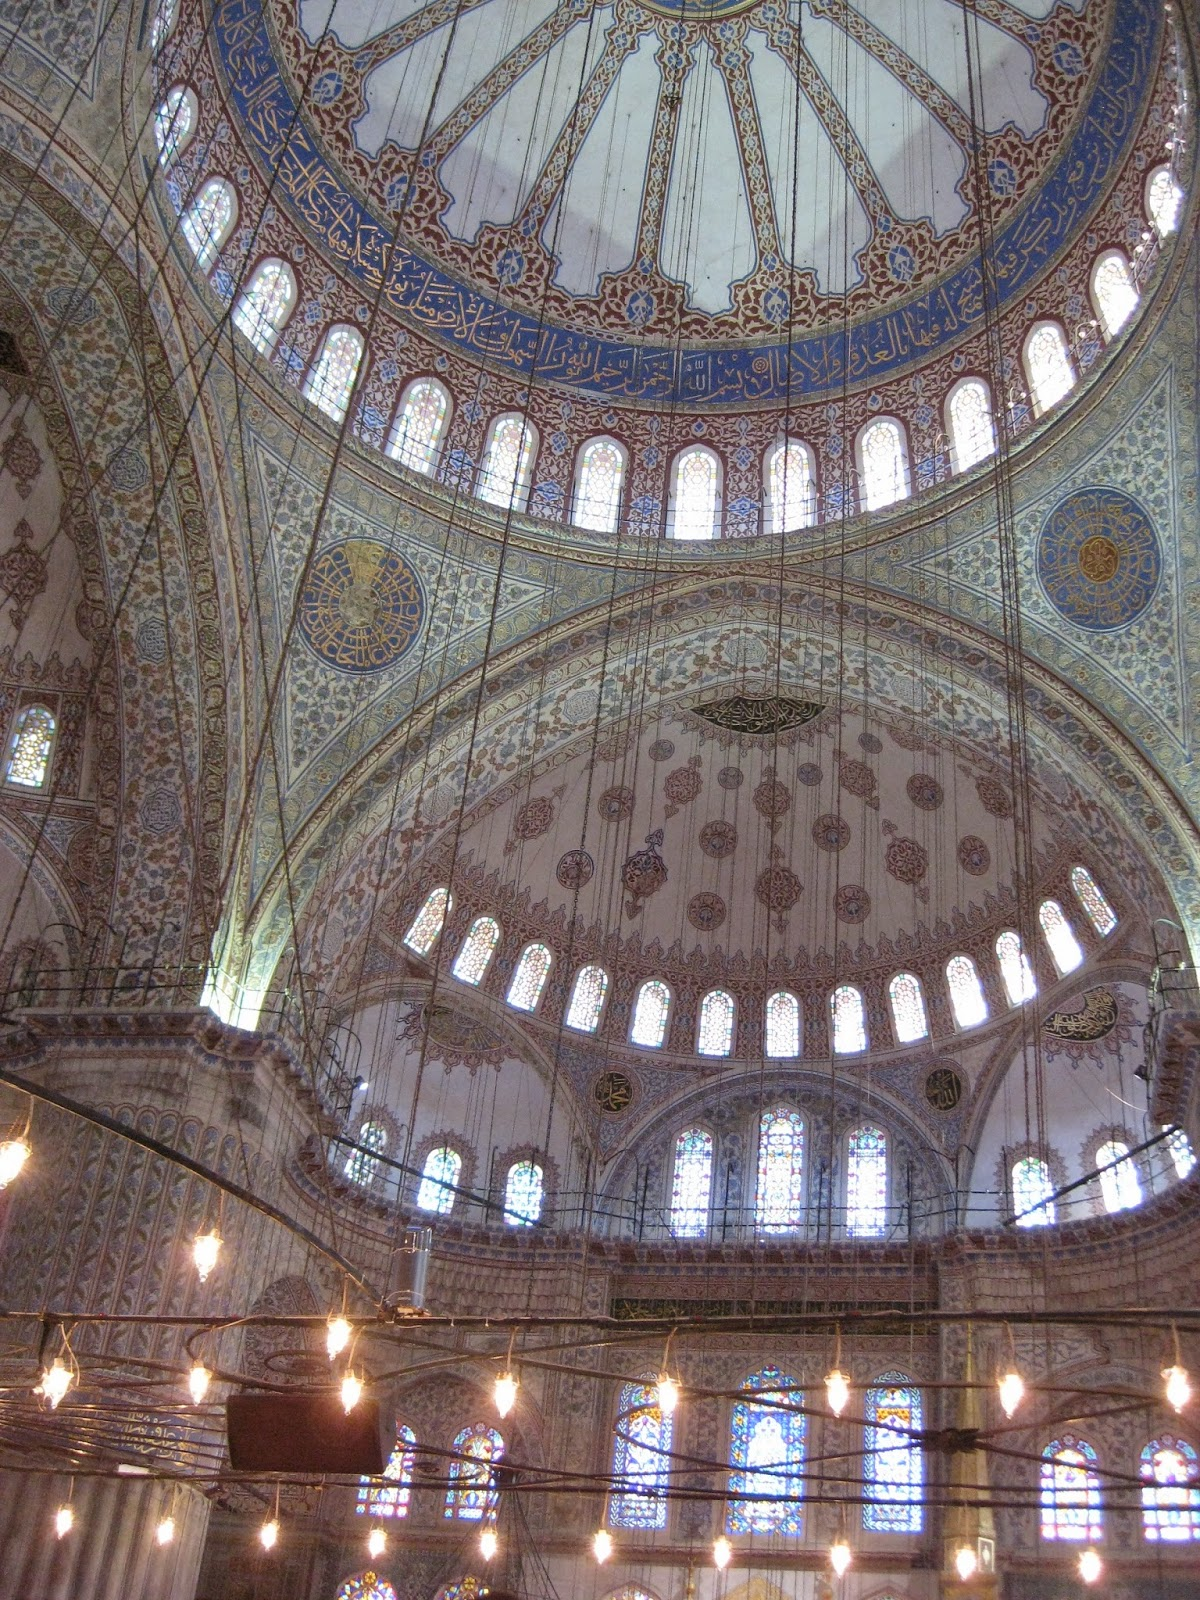 Istanbul - The ceiling and lights inside the Blue Mosque are amazing